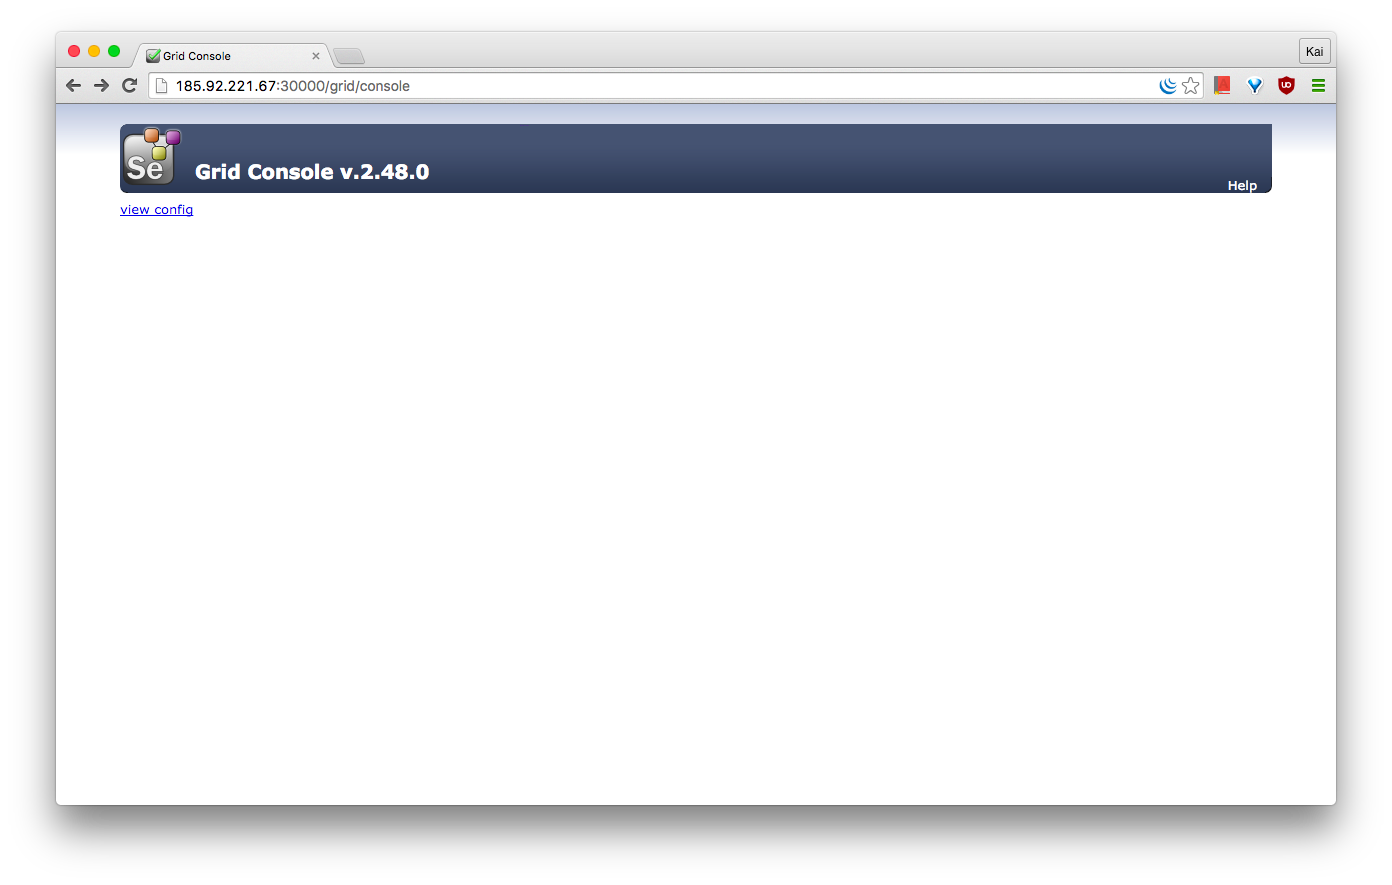 Getting Started with Kubernetes on CentOS 7 - Vultr com